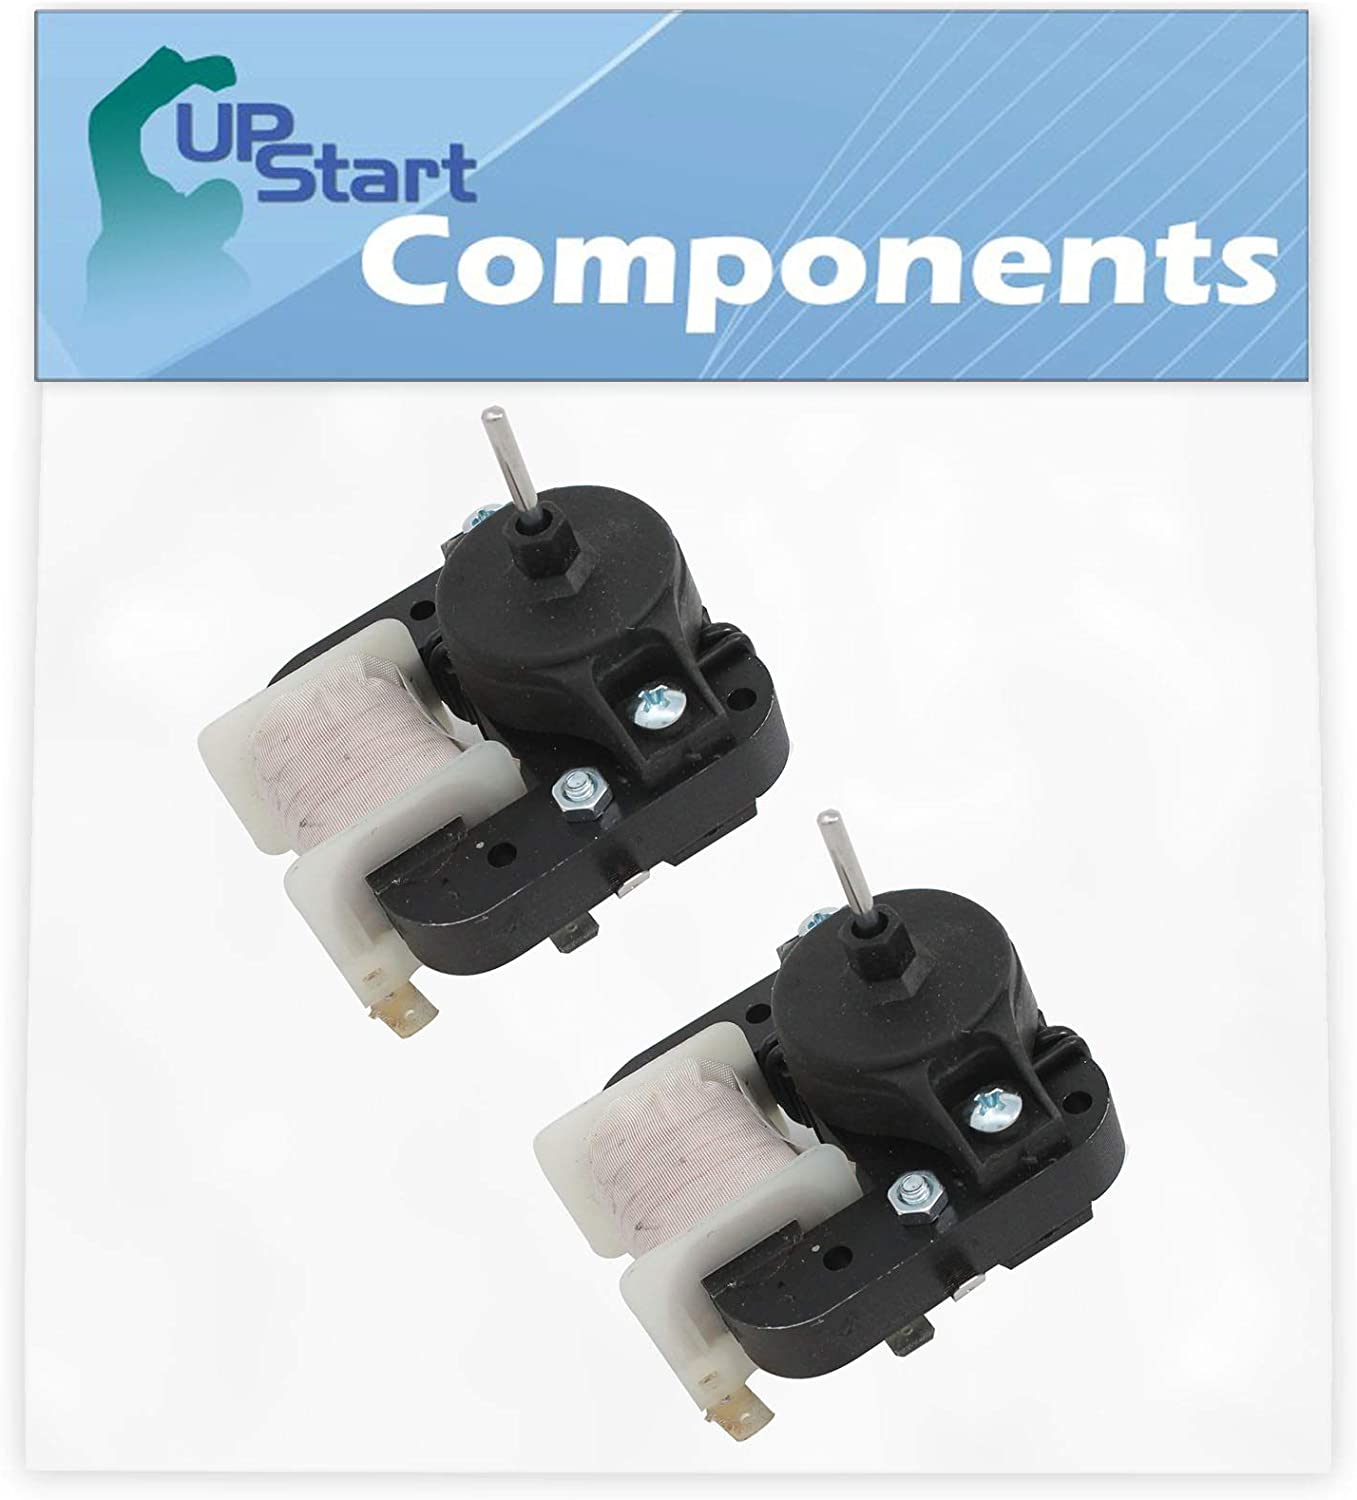 2-Pack W10189703 Evaporator Fan Motor Replacement for Kenmore/Sears 106.62159110 Refrigerator - Compatible with WPW10189703 Refrigerator Evaporator Fan Motor